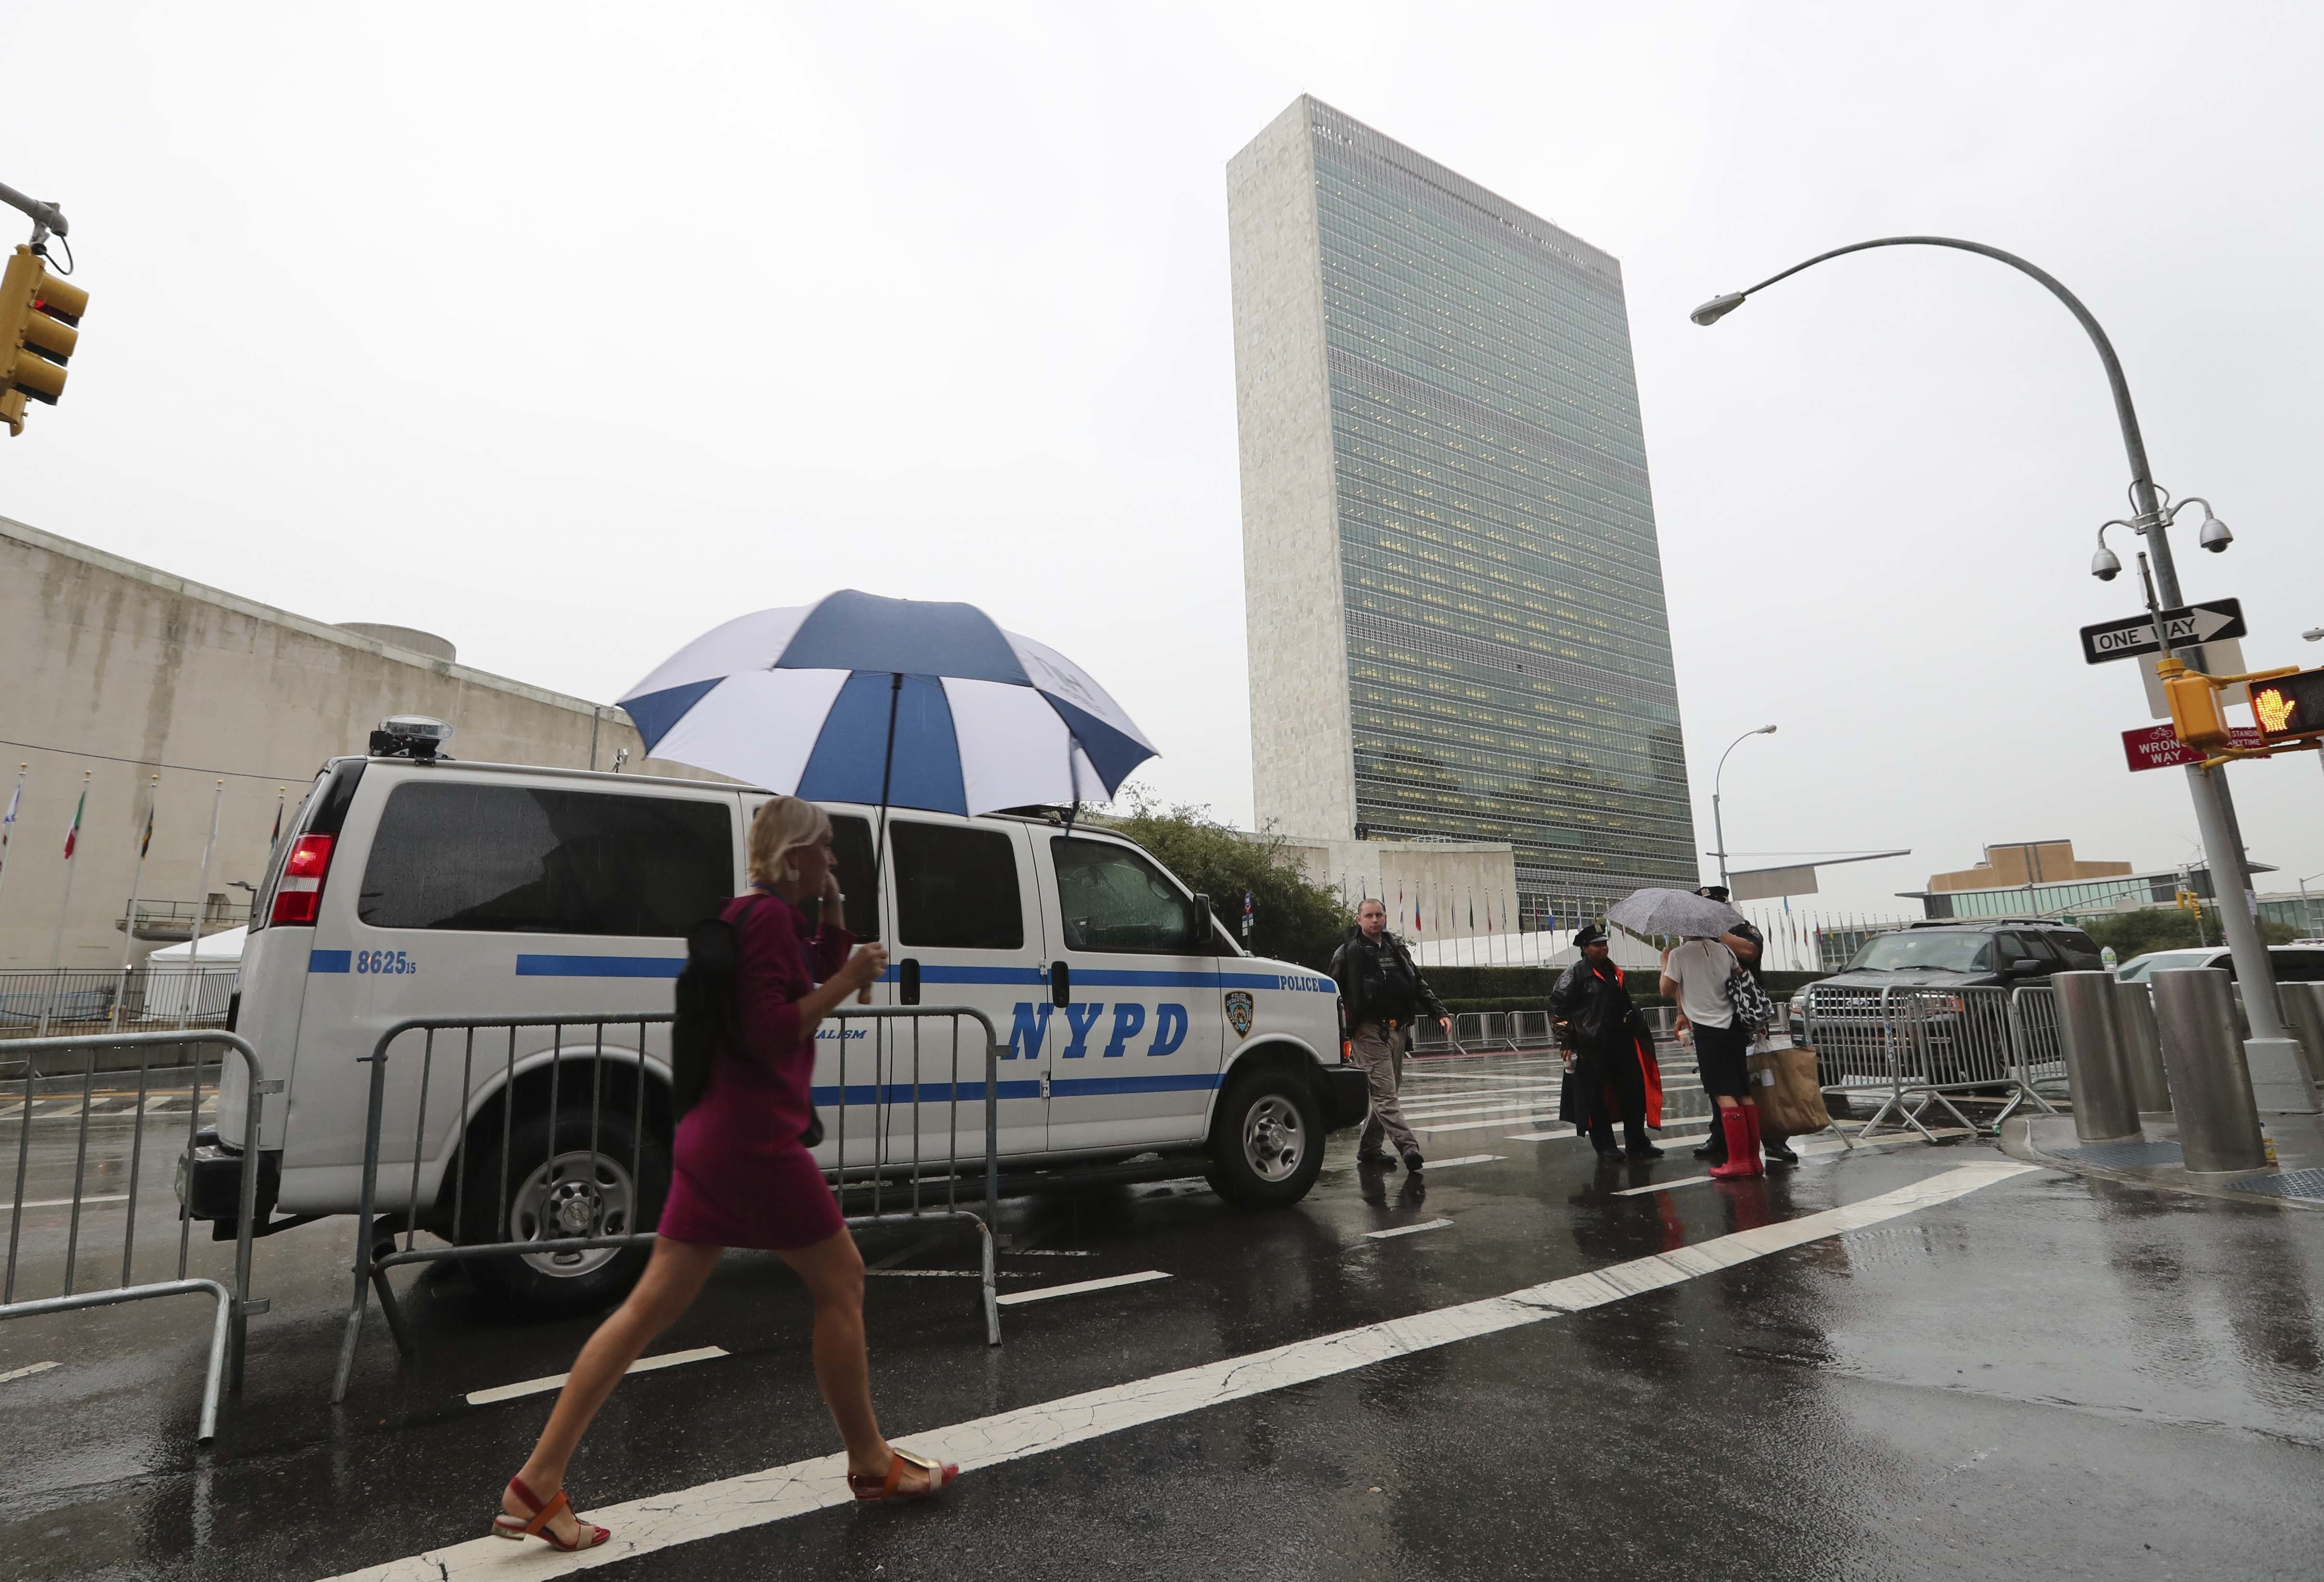 A police vehicle is seen on a street near the United Nations headquarters in New York City